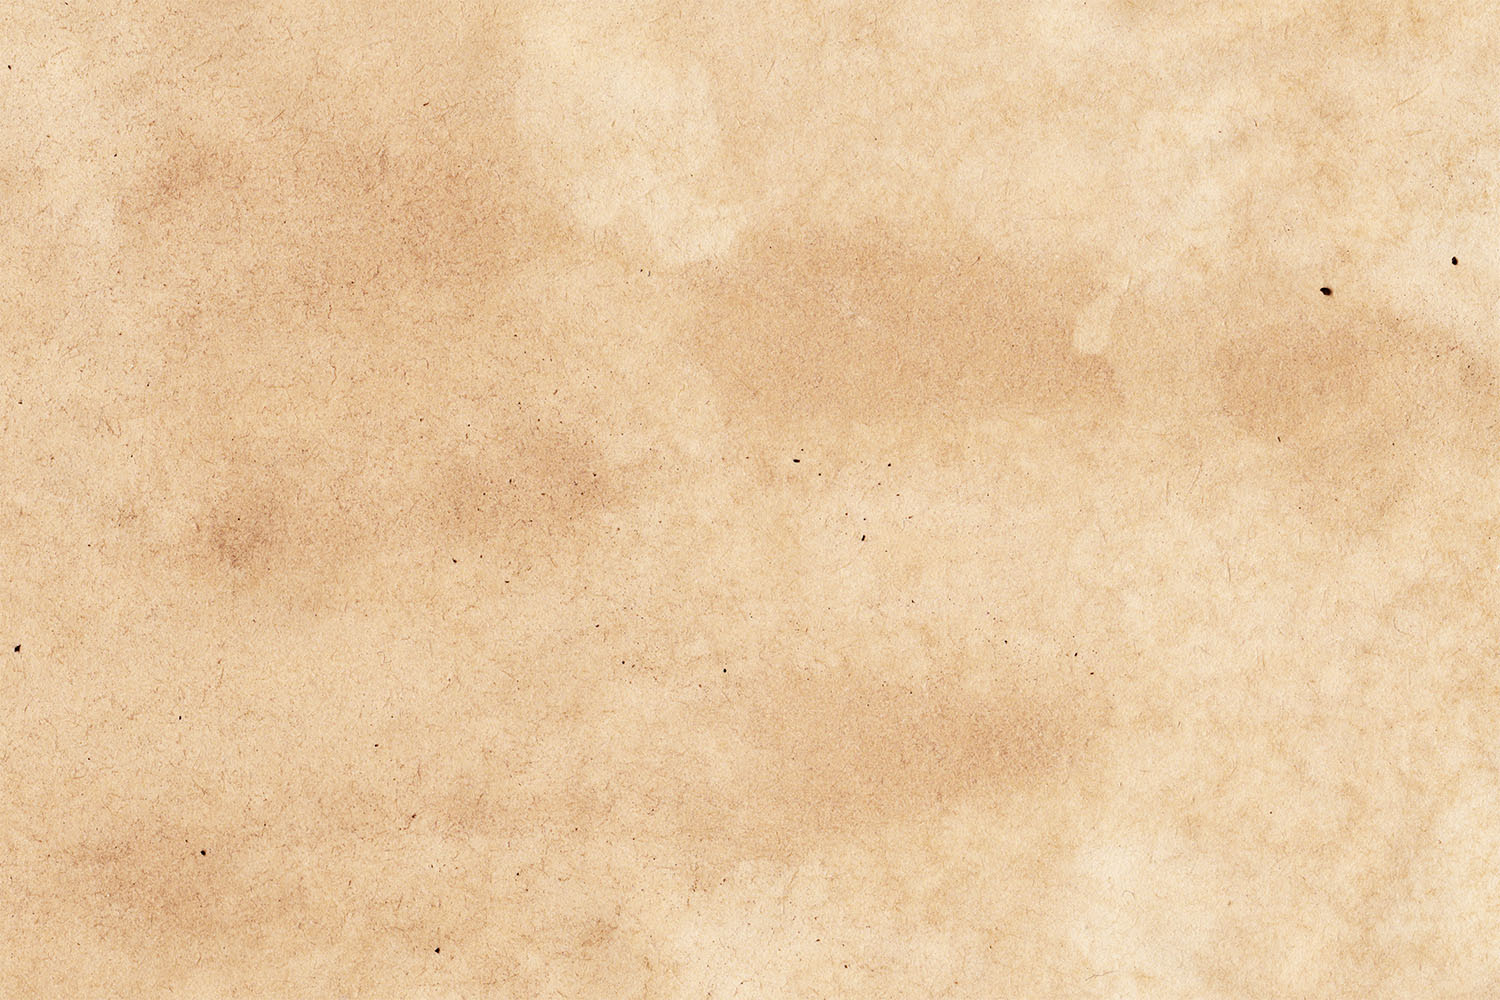 Handcrafted Vintage Paper Textures Vol. 03 example image 3